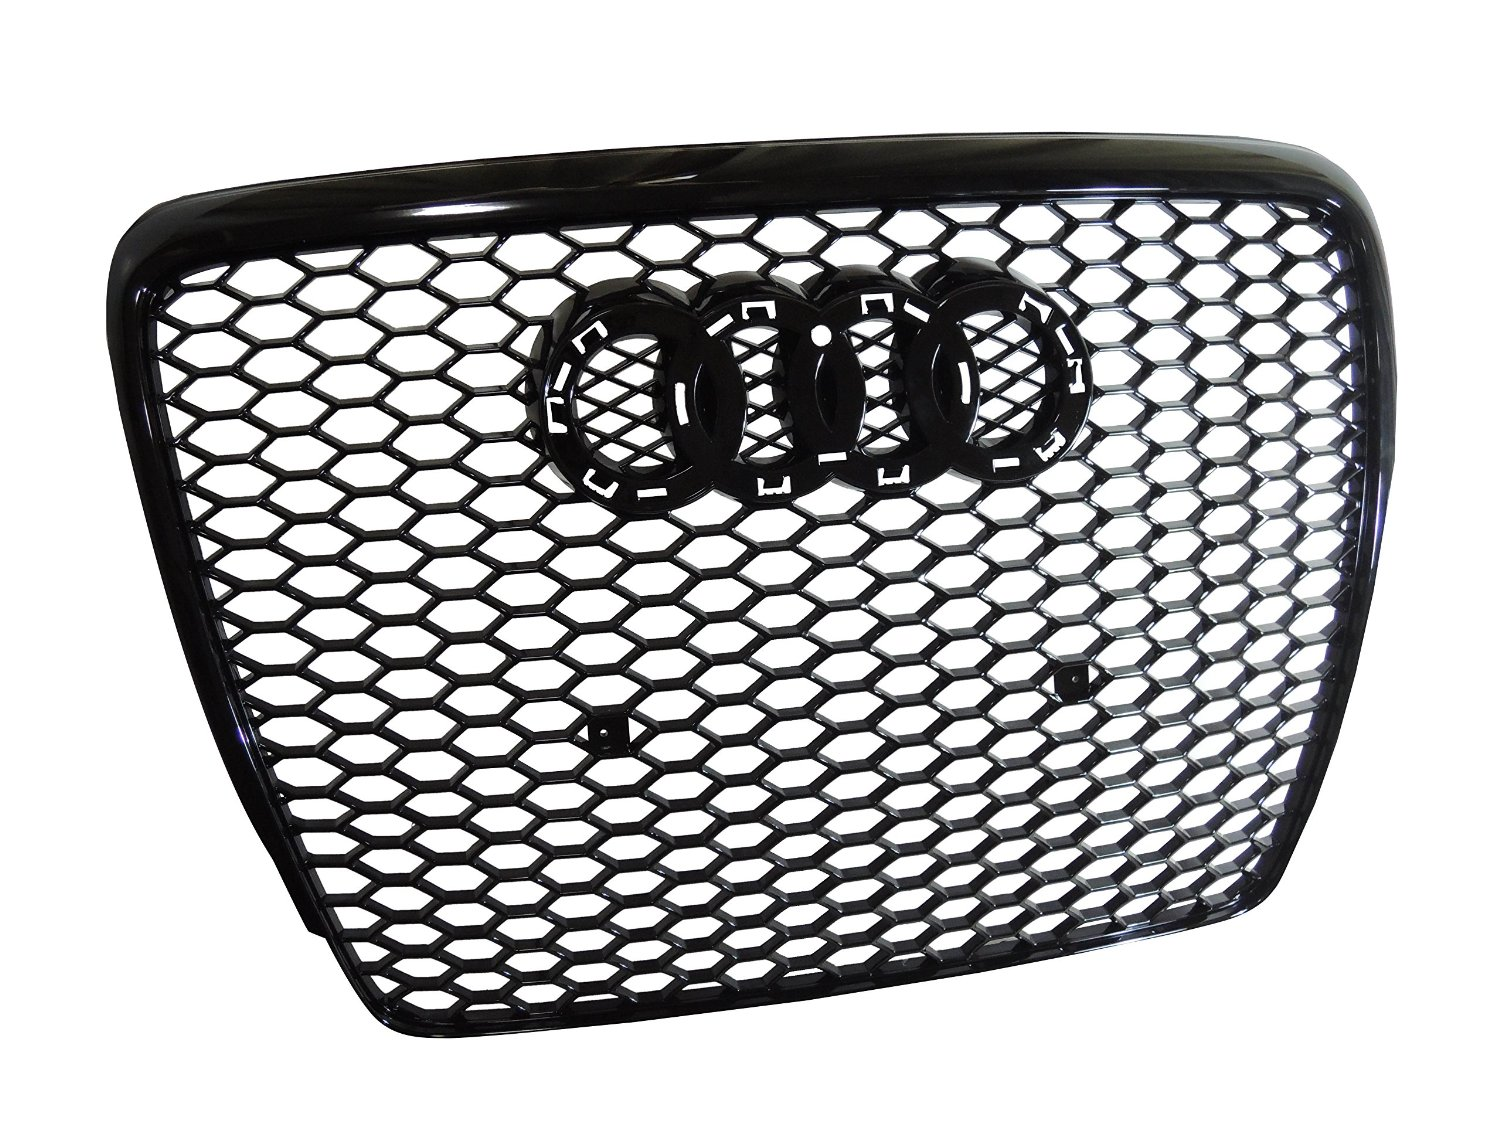 RS6 Style Honeycomb Hex Hex Black Mesh Front Grill Upper Bumper Grille Fits for Audi A6 C6 facelift 2008 2009 2010 2011